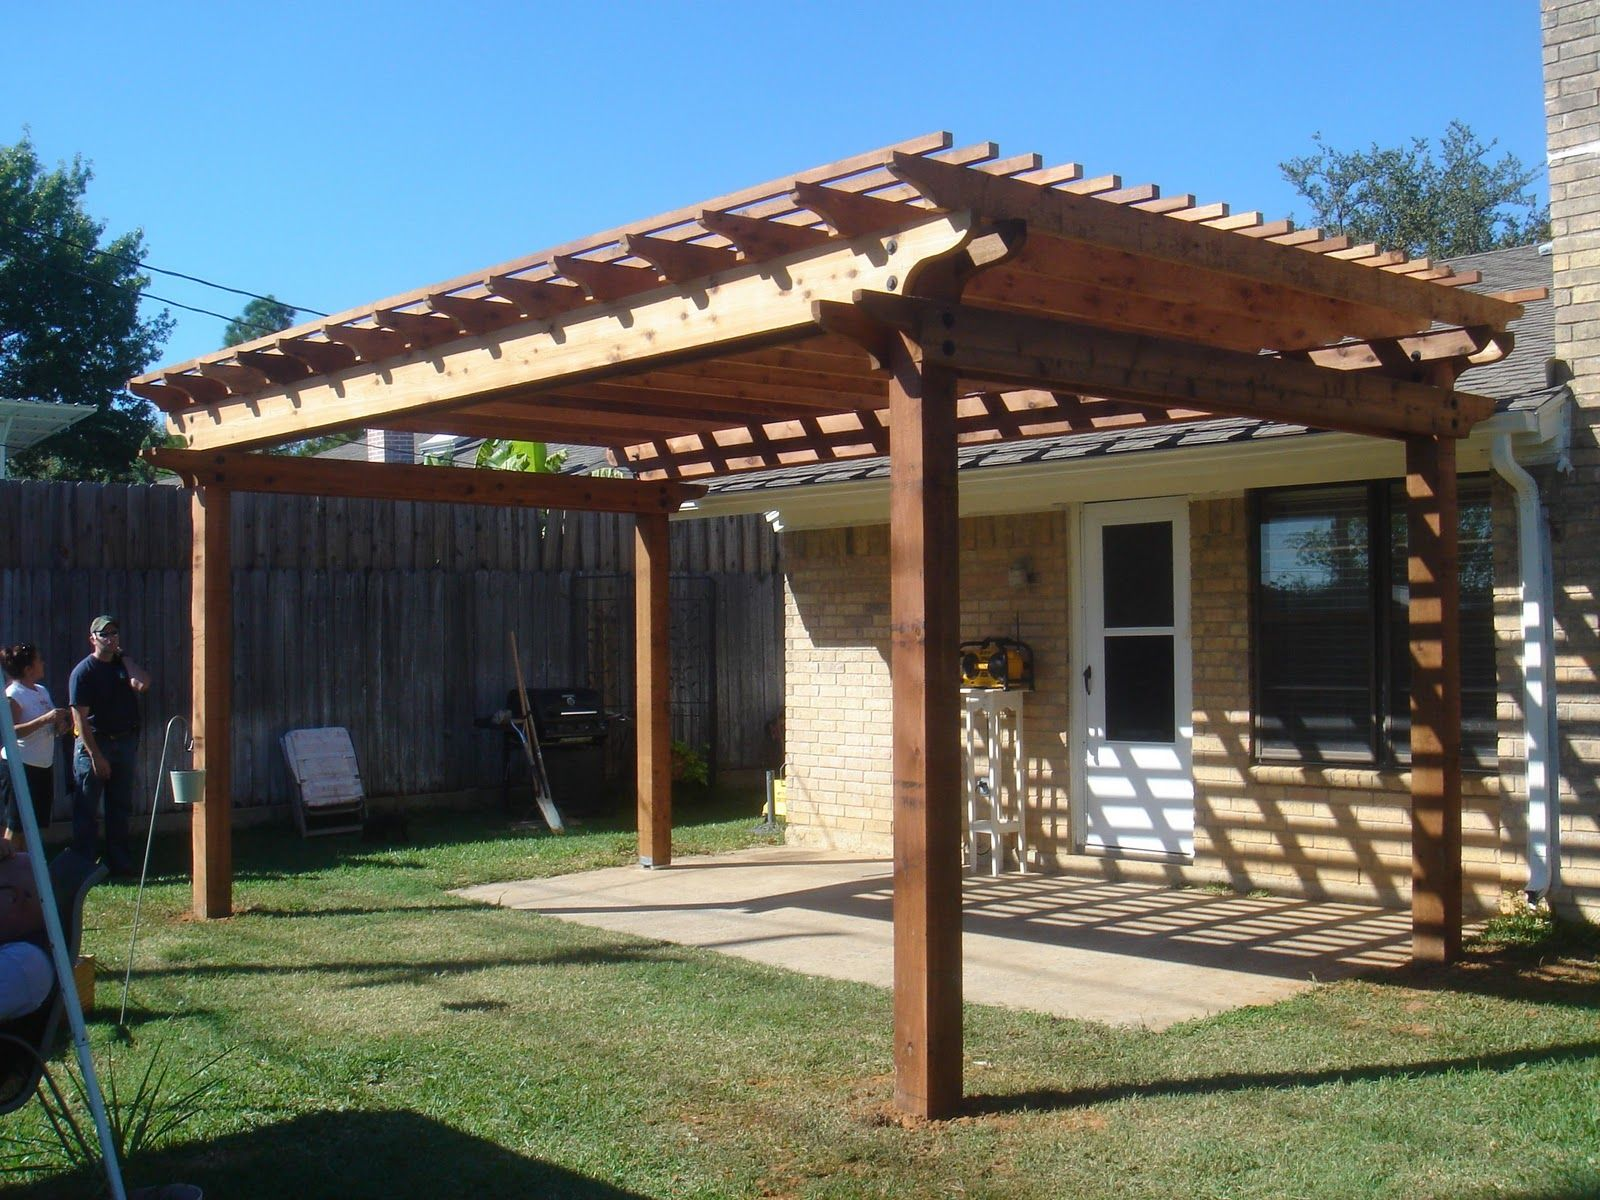 Backyard pergola and junkyard dog | Wooden Gazebo Kits | Pinterest ...